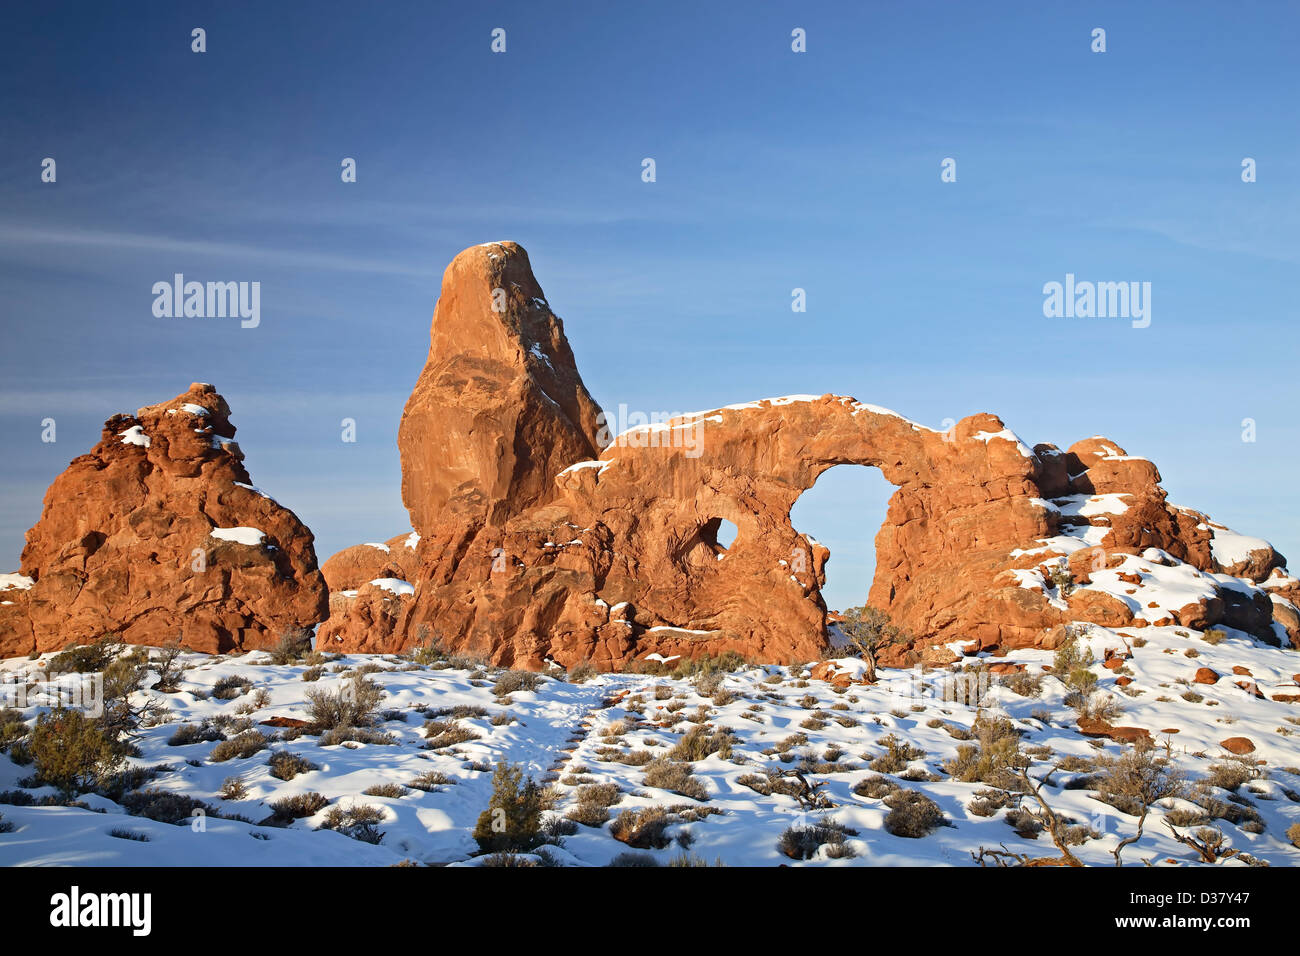 Turret Arch under snow, The Windows, Arches National Park, Moab, Utah USA - Stock Image